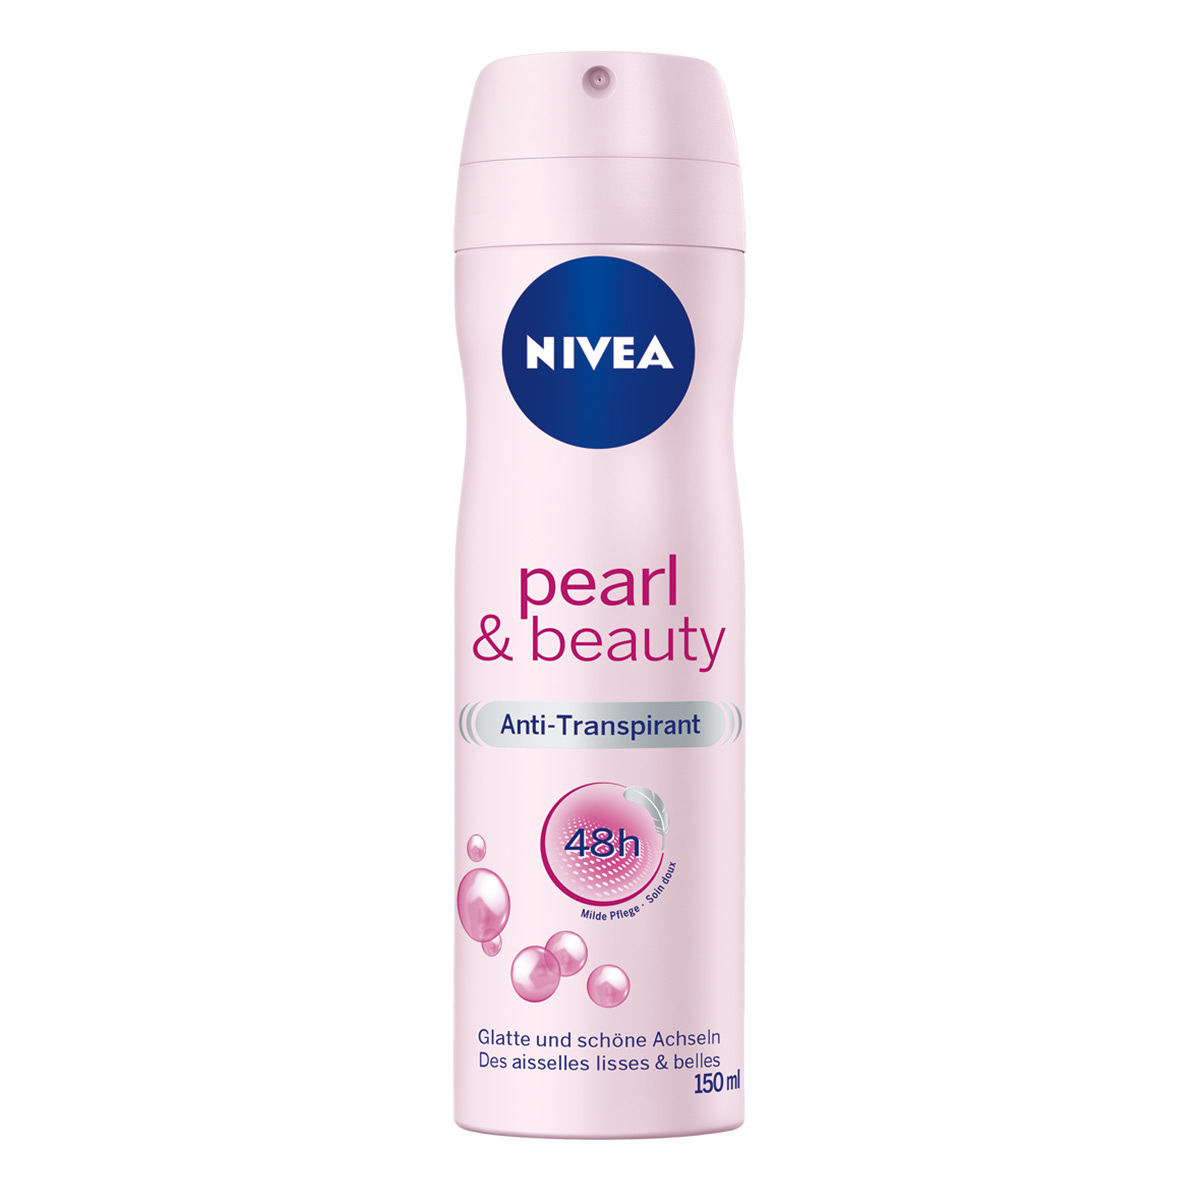 Nivea NIVEA Pearl & Beauty